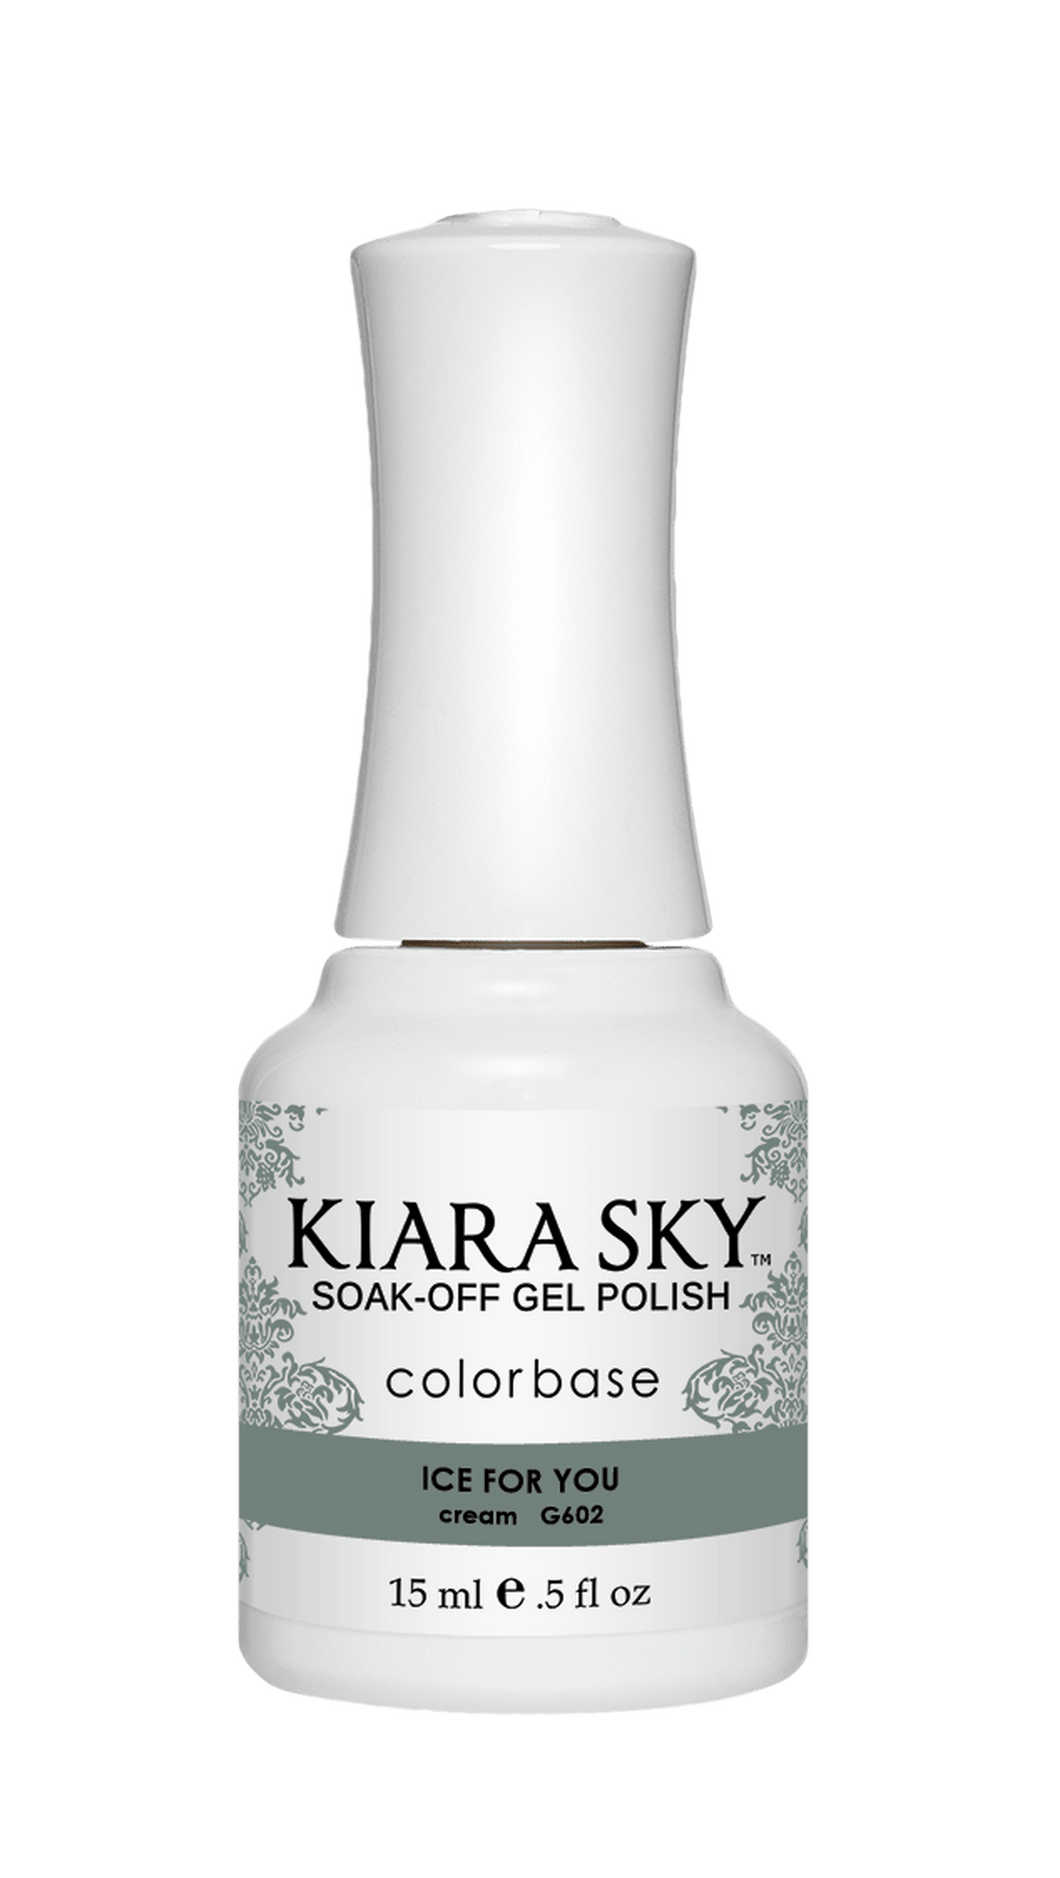 Kiara Sky Ice For You G602